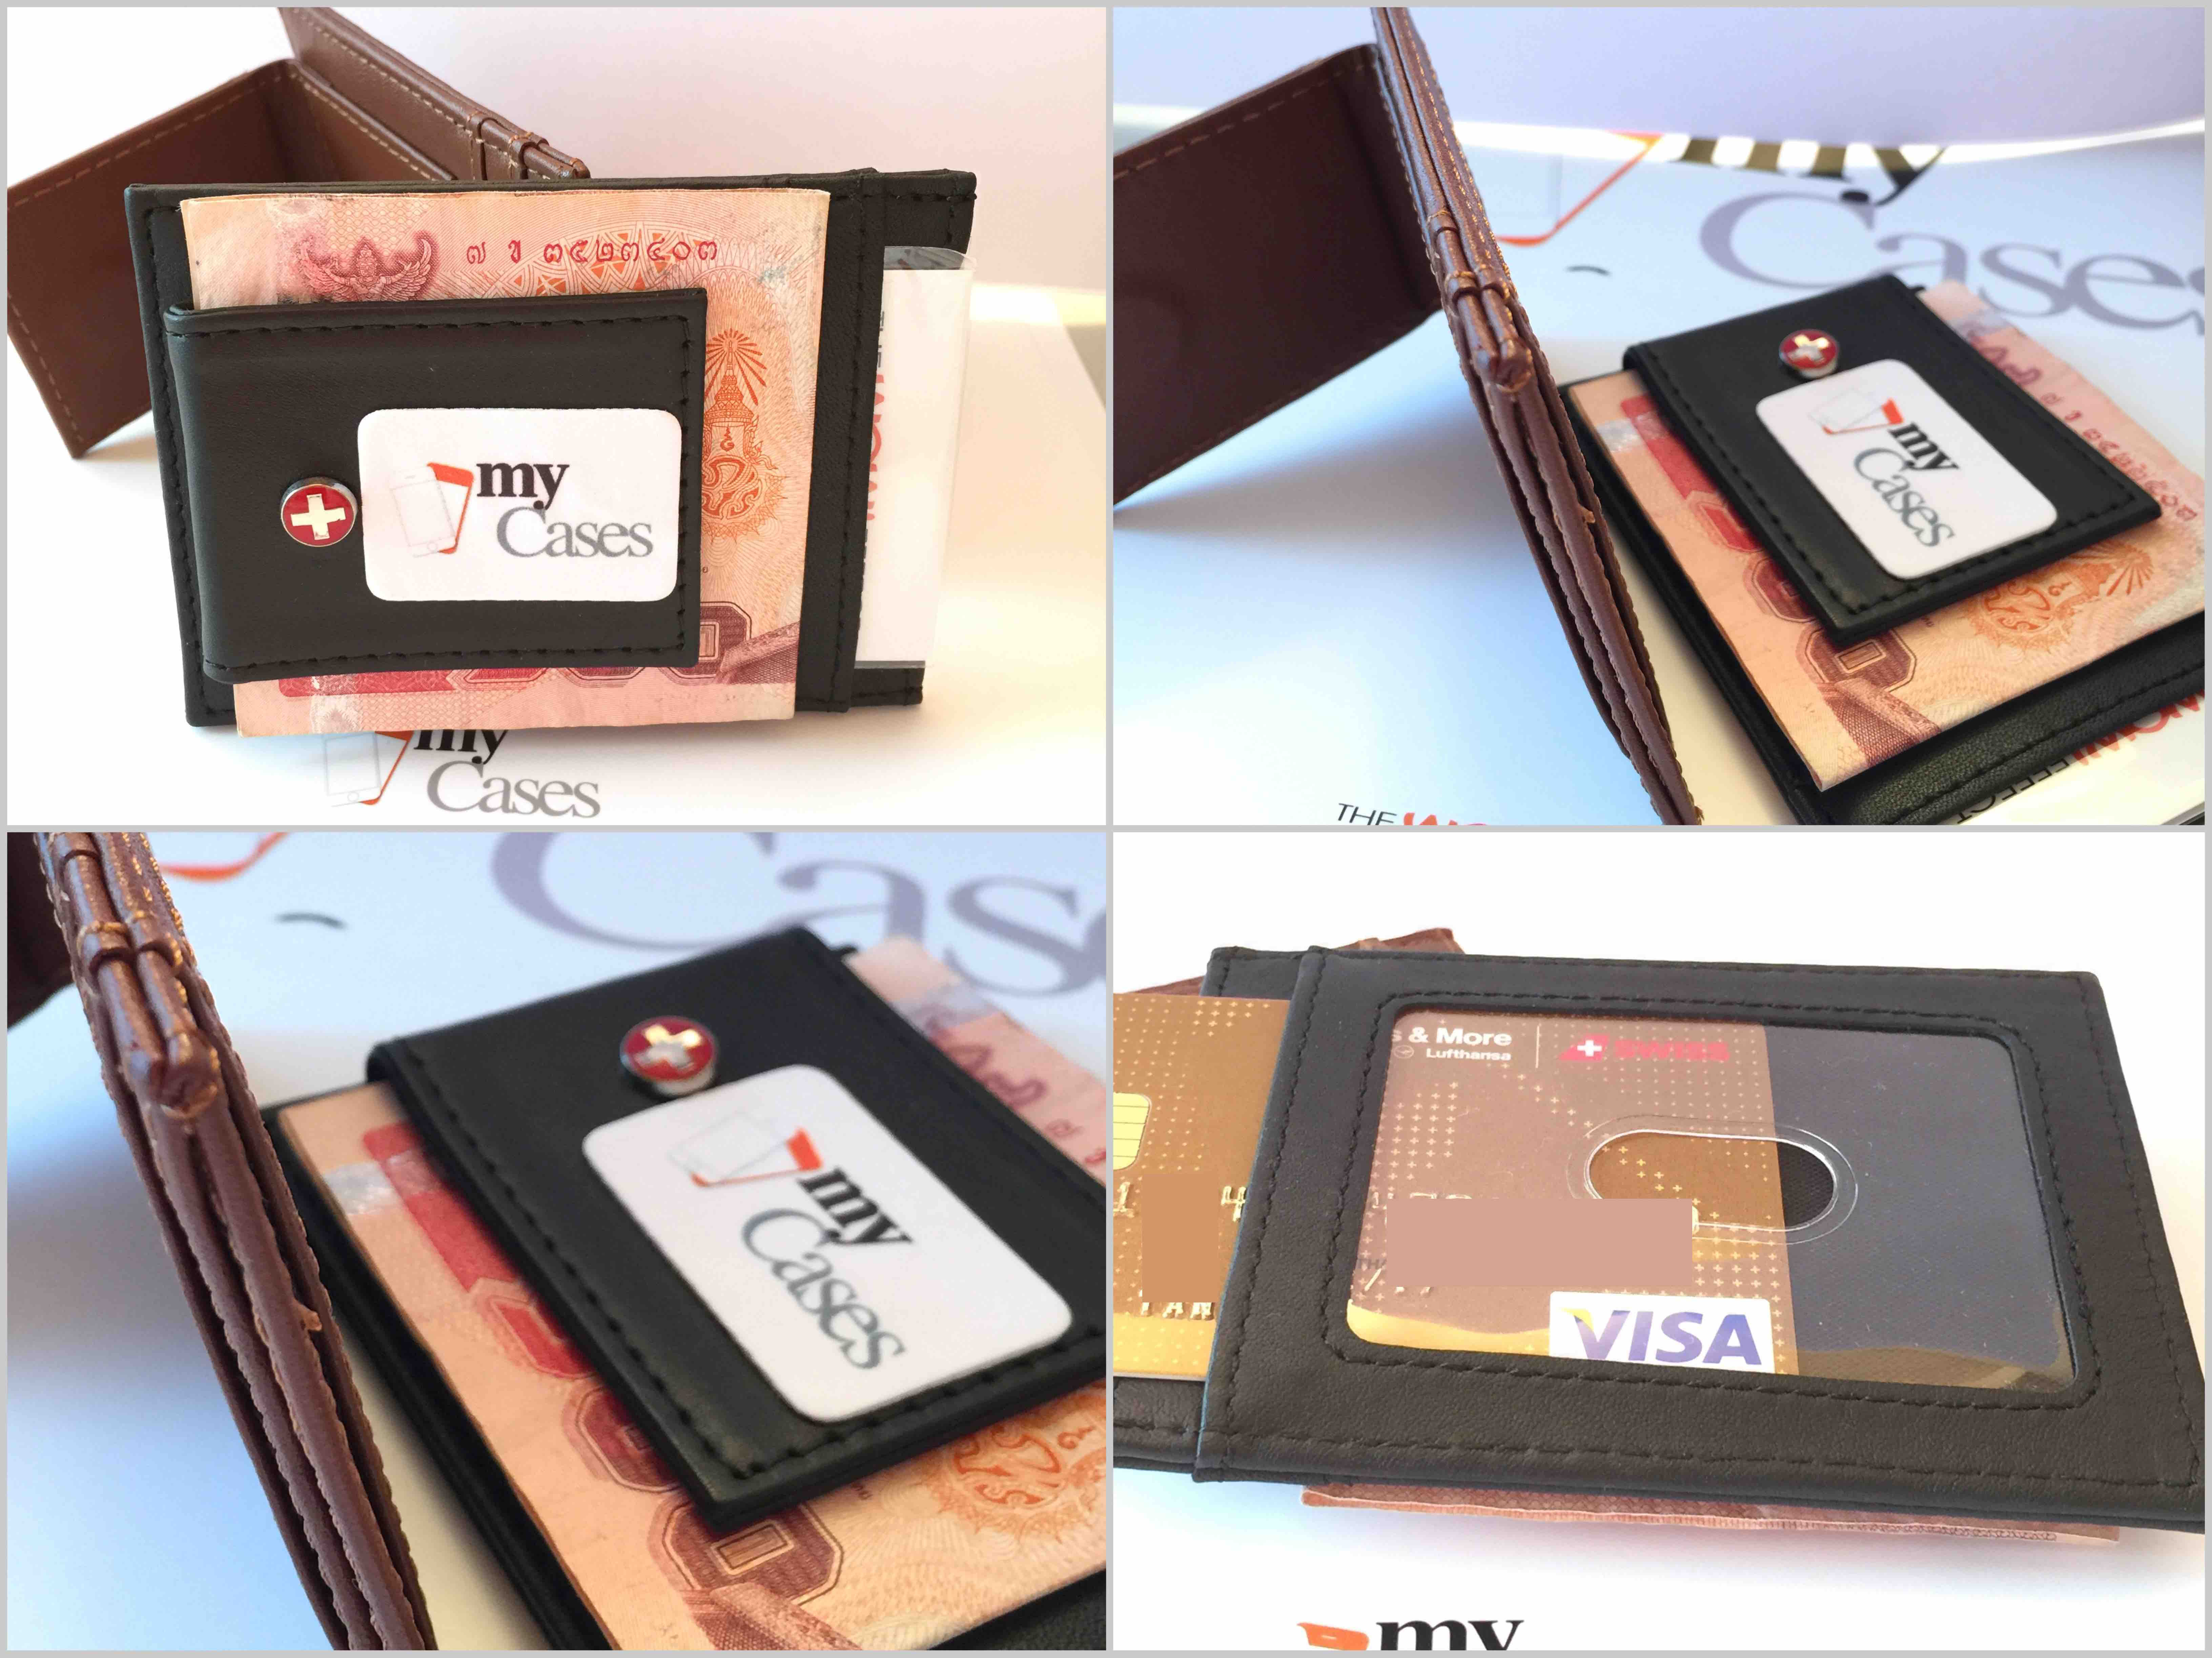 Cardholder Swiss / my-cases.ch